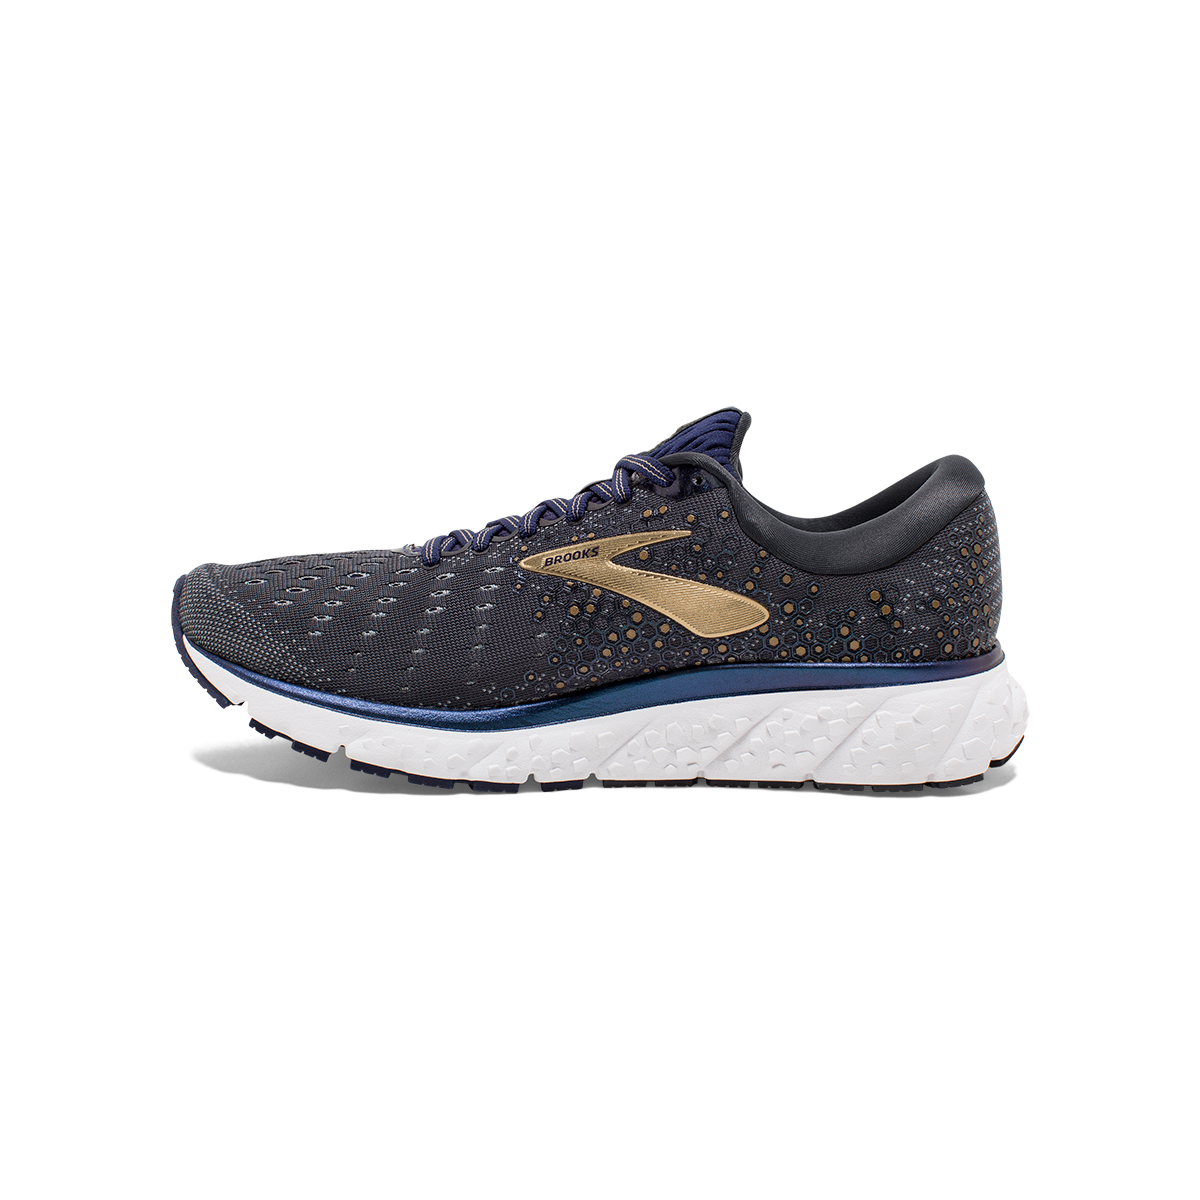 Men's Brooks Glycerin 17 Running Shoe - Color: Grey/Navy/Gold (Regular Width) - Size: 7, Grey/Navy/Gold, large, image 2